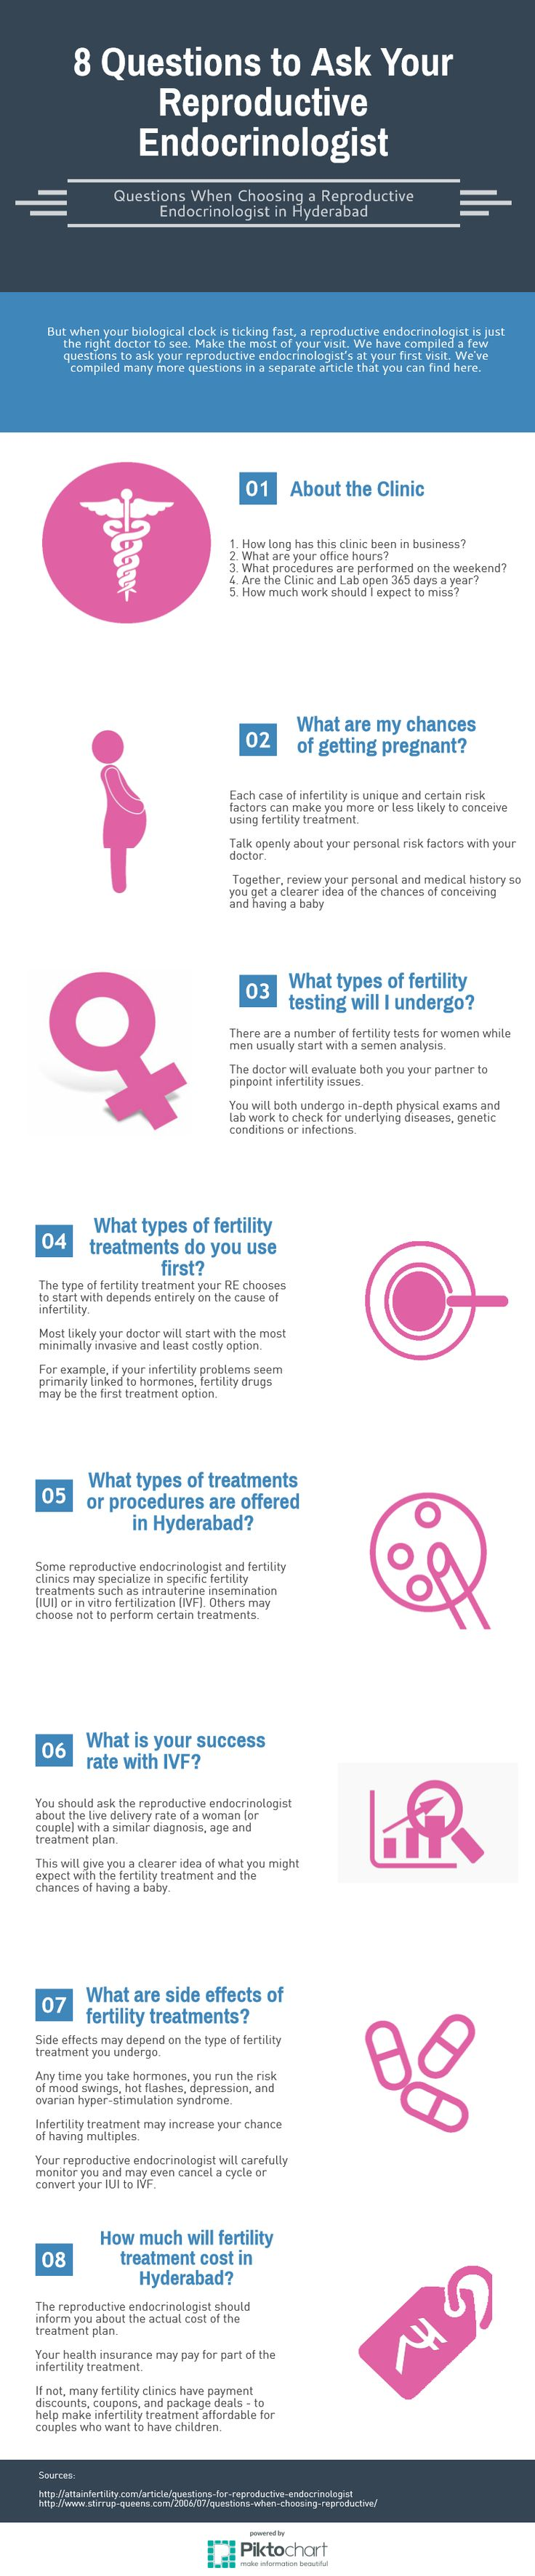 When Choosing A Reproductive Endocrinologist In Hyderabad Ask Some  Questions Like About About Clinic, My